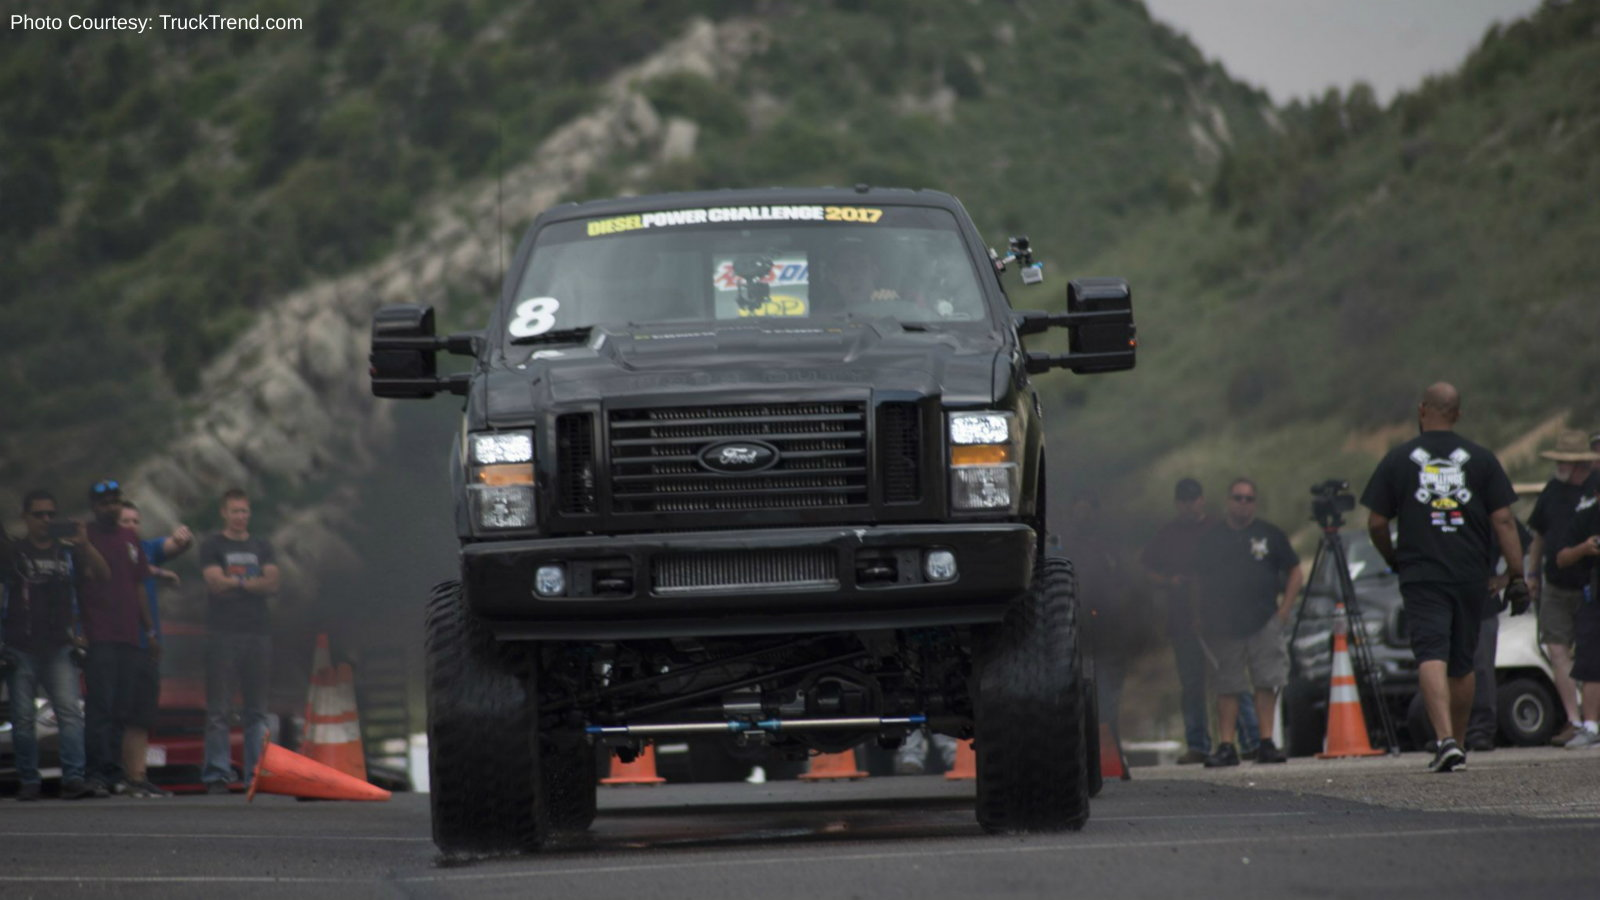 Diesel Power Challenge - Trailer-Tow Obstacle Course